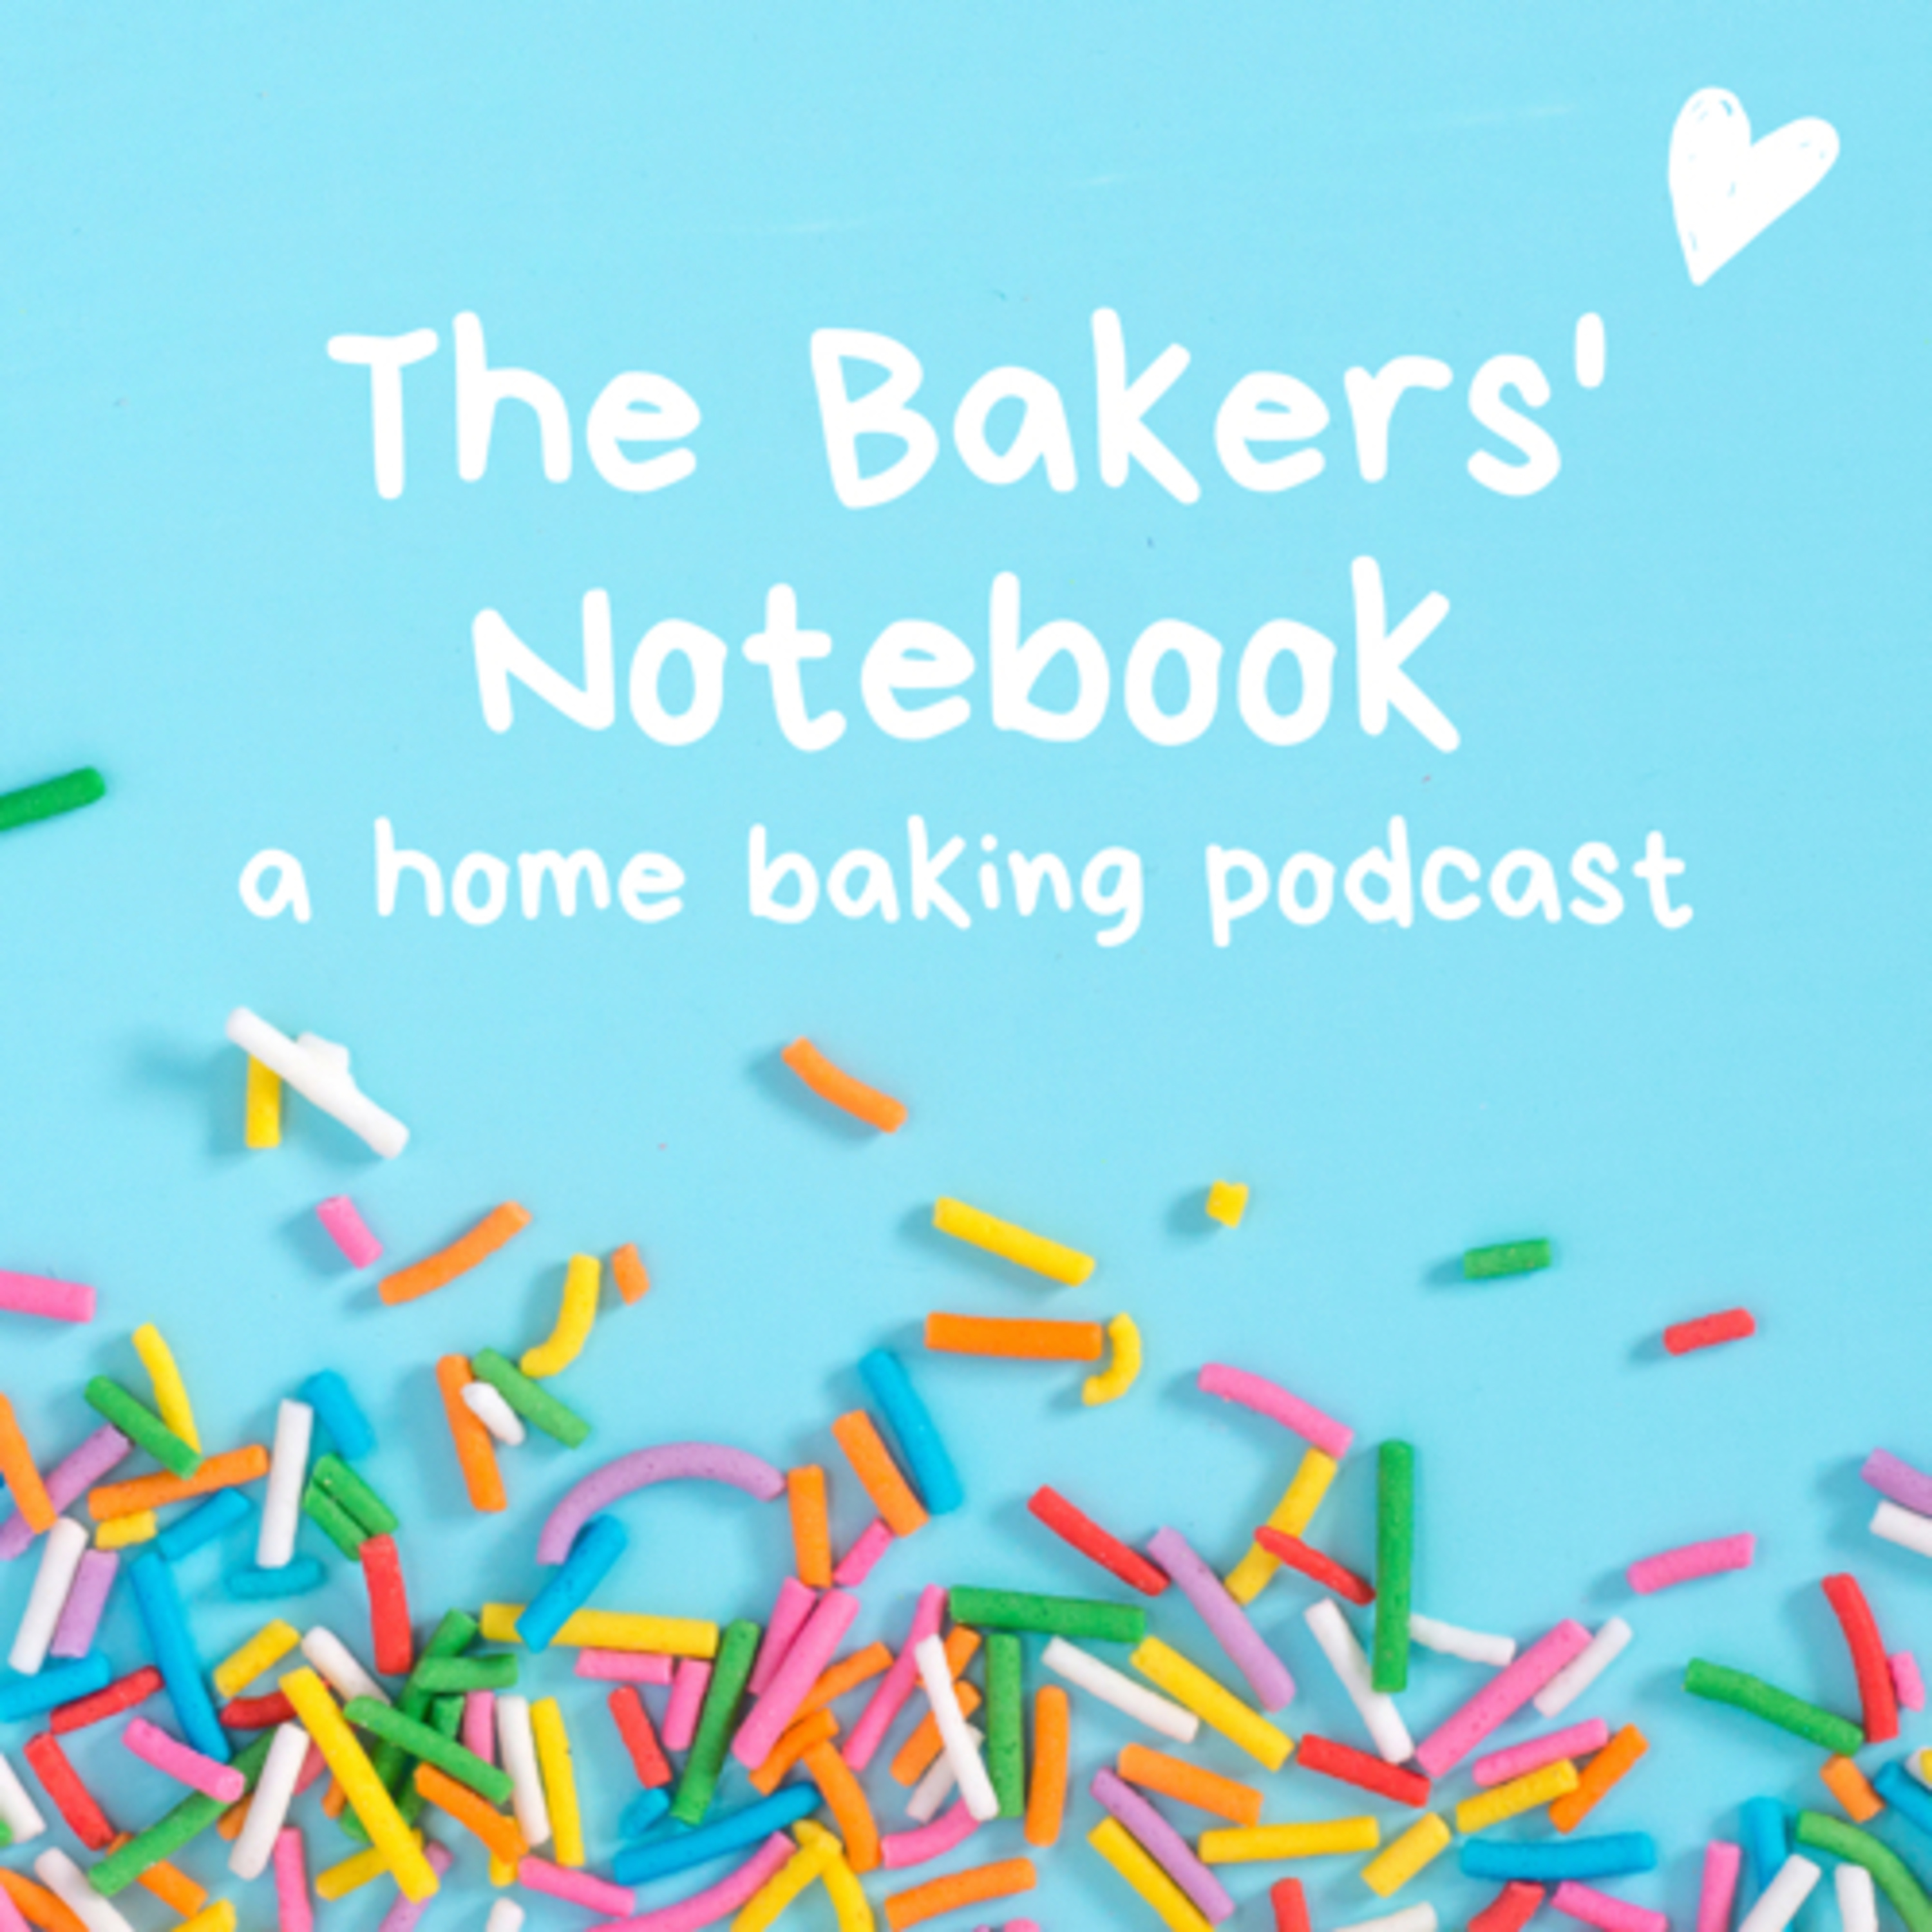 The Bakers' Notebook